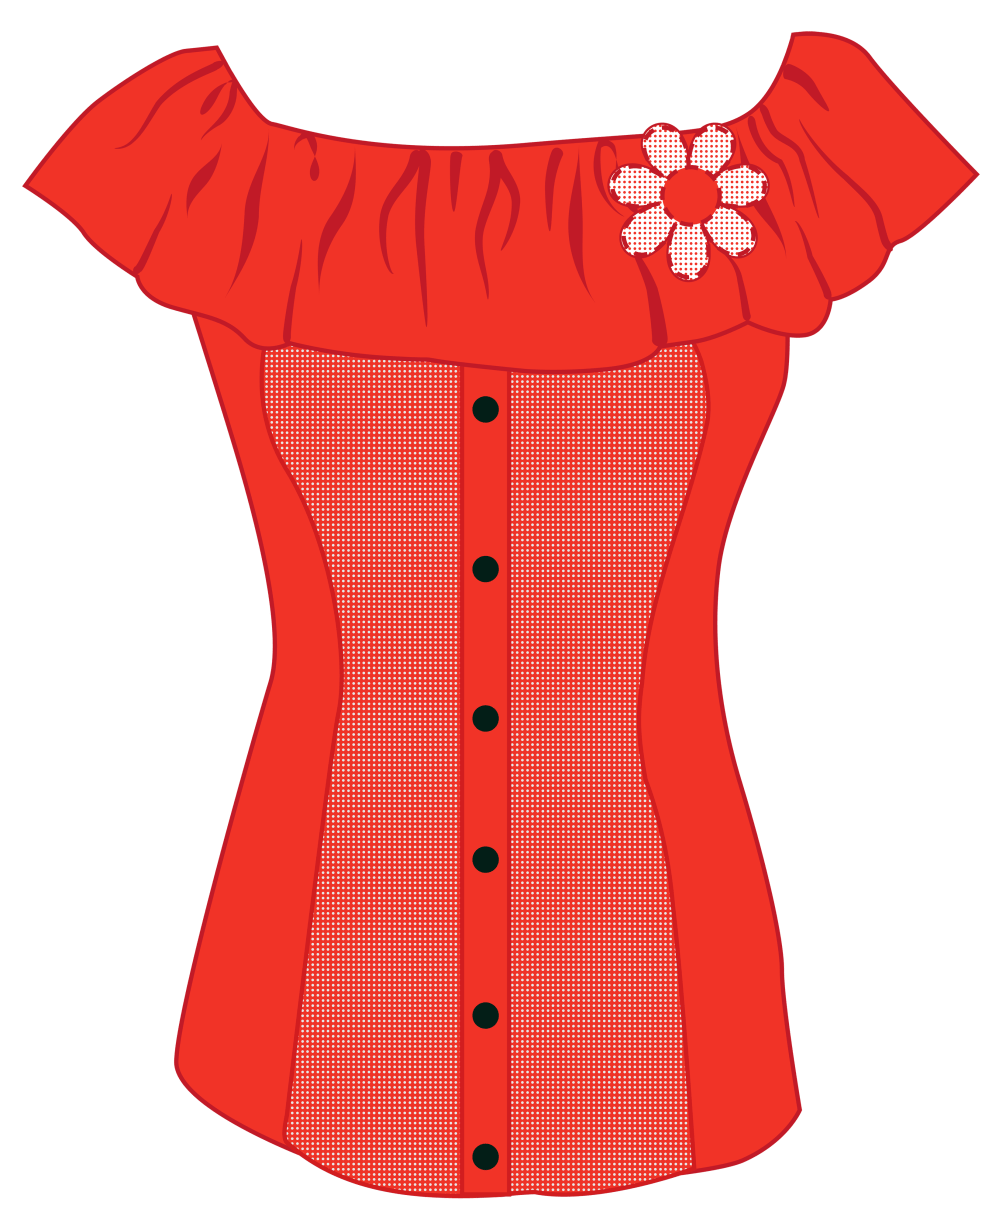 medium resolution of female red top png clipart